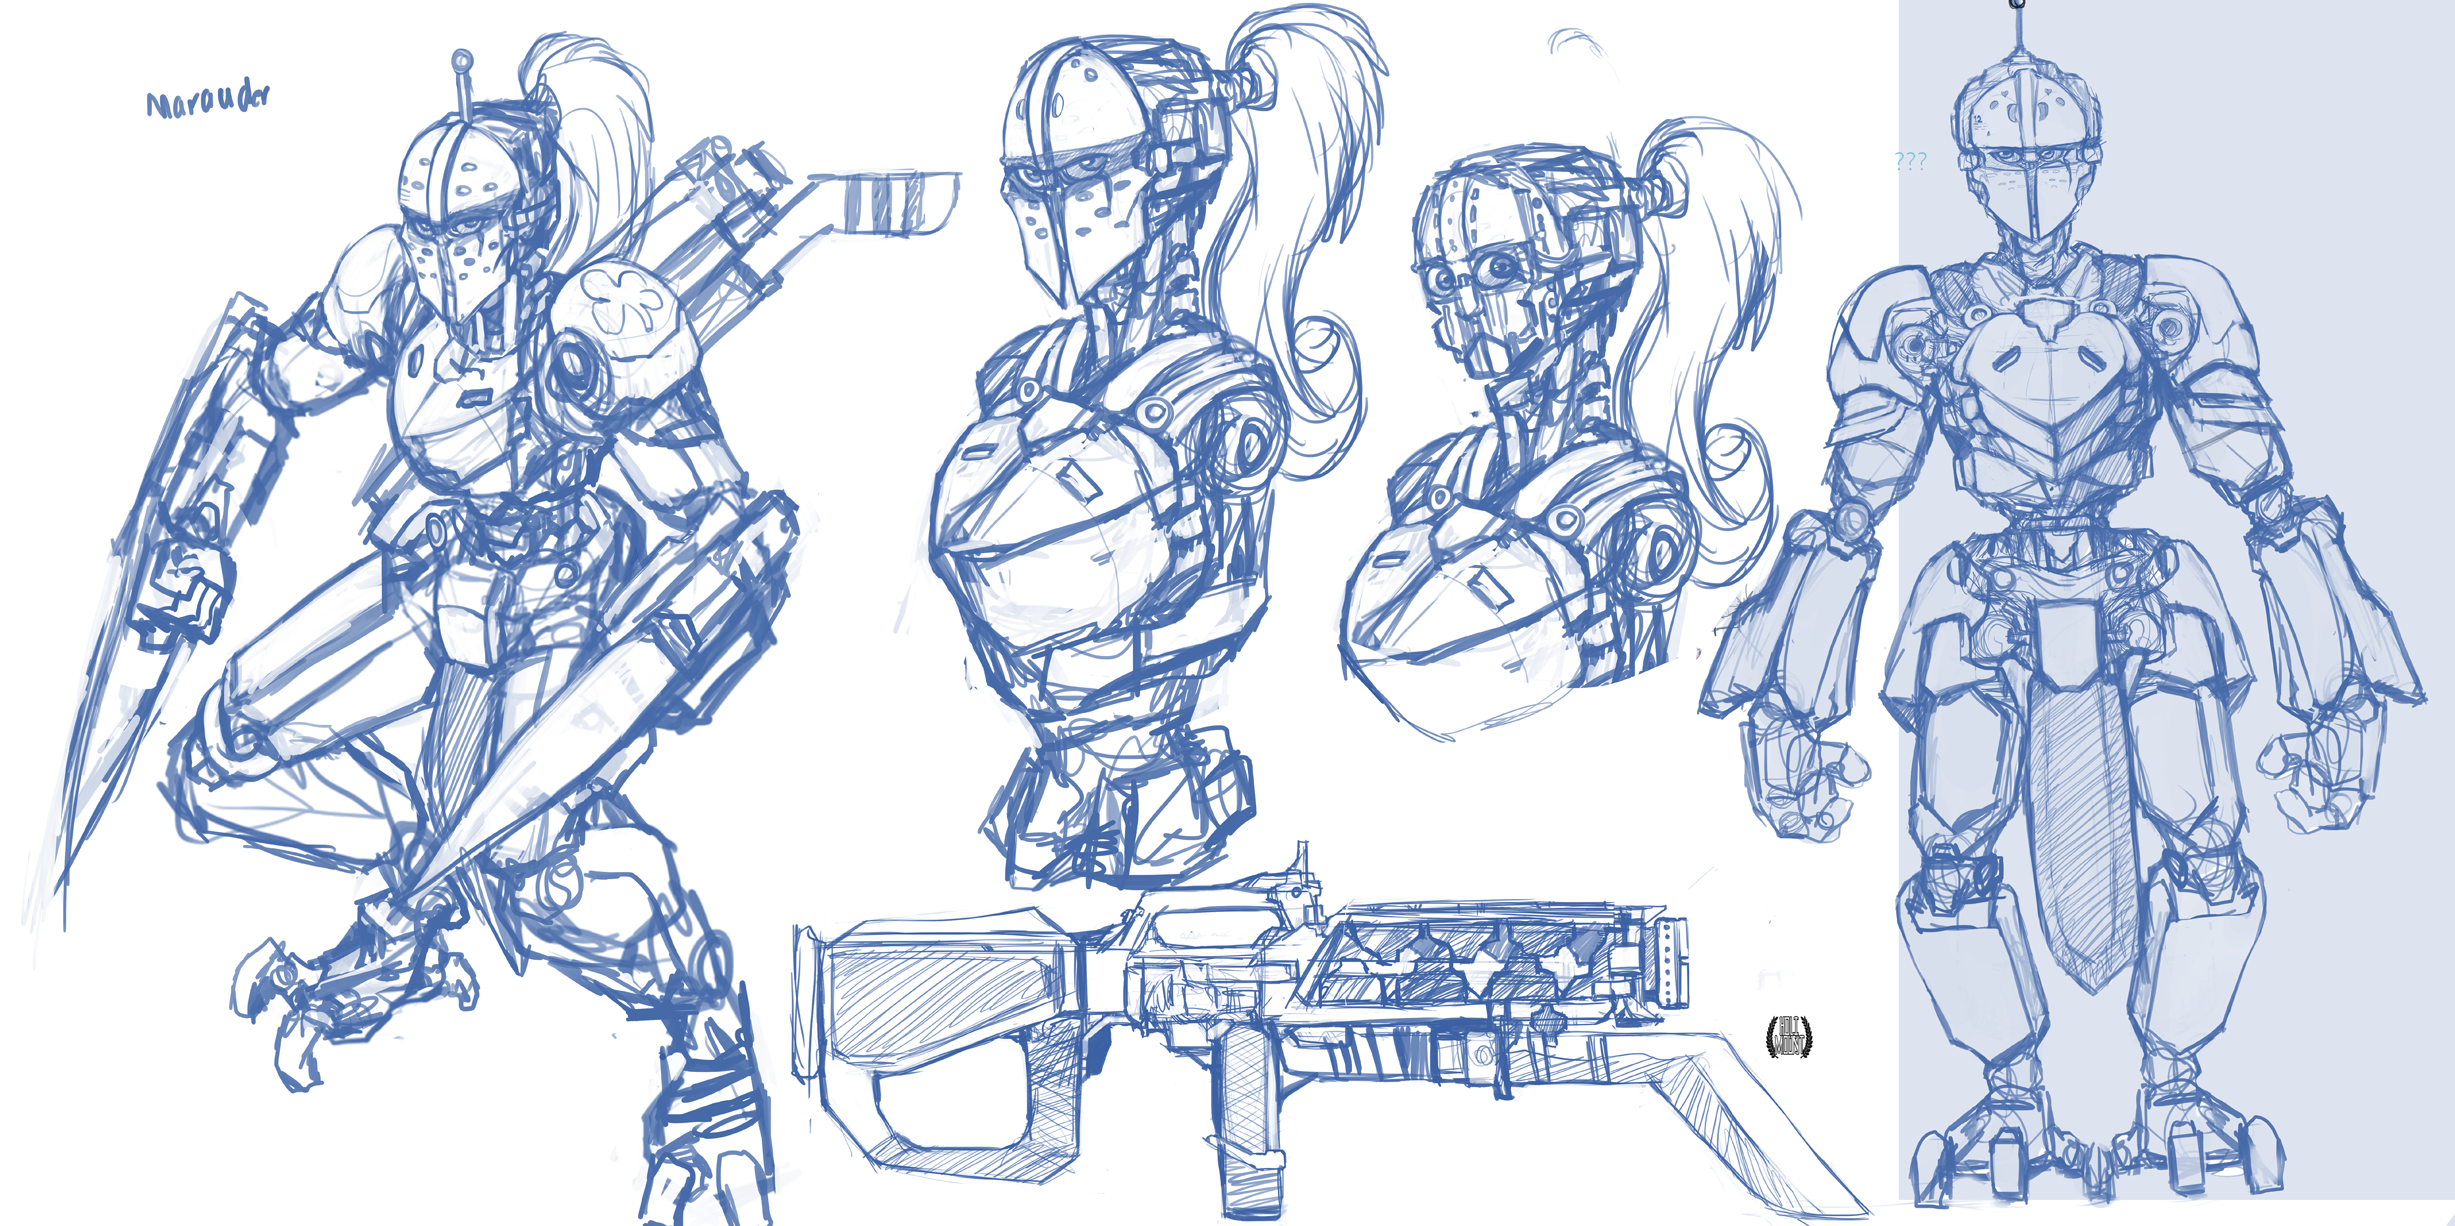 Boston Knight sketches